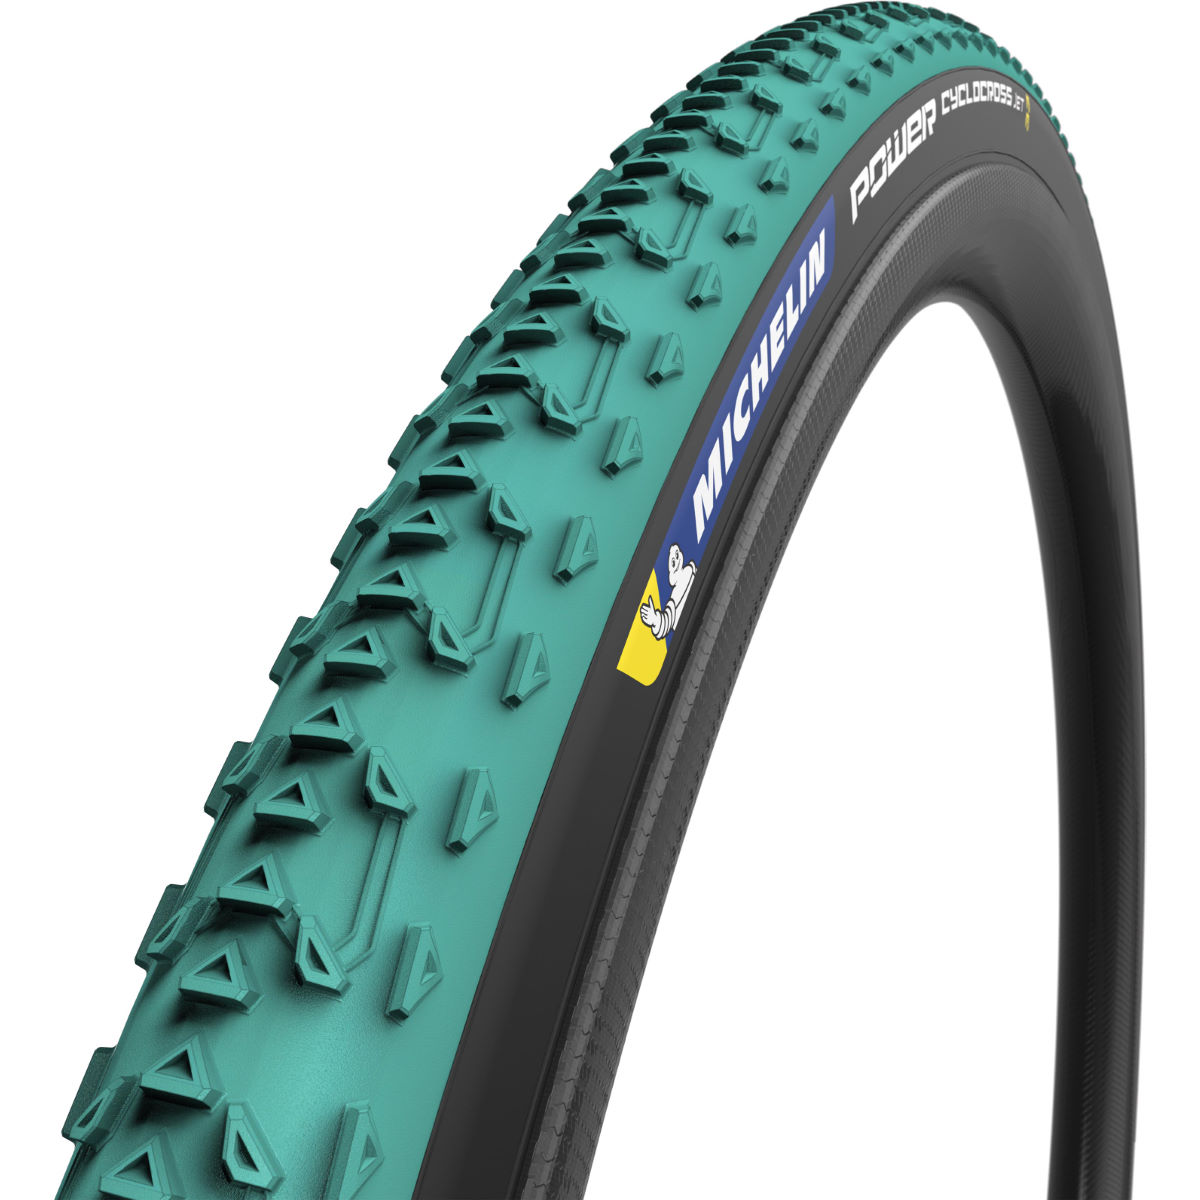 MICHELIN Michelin Power Cyclocross Jet TLR TS Tyre   Tyres